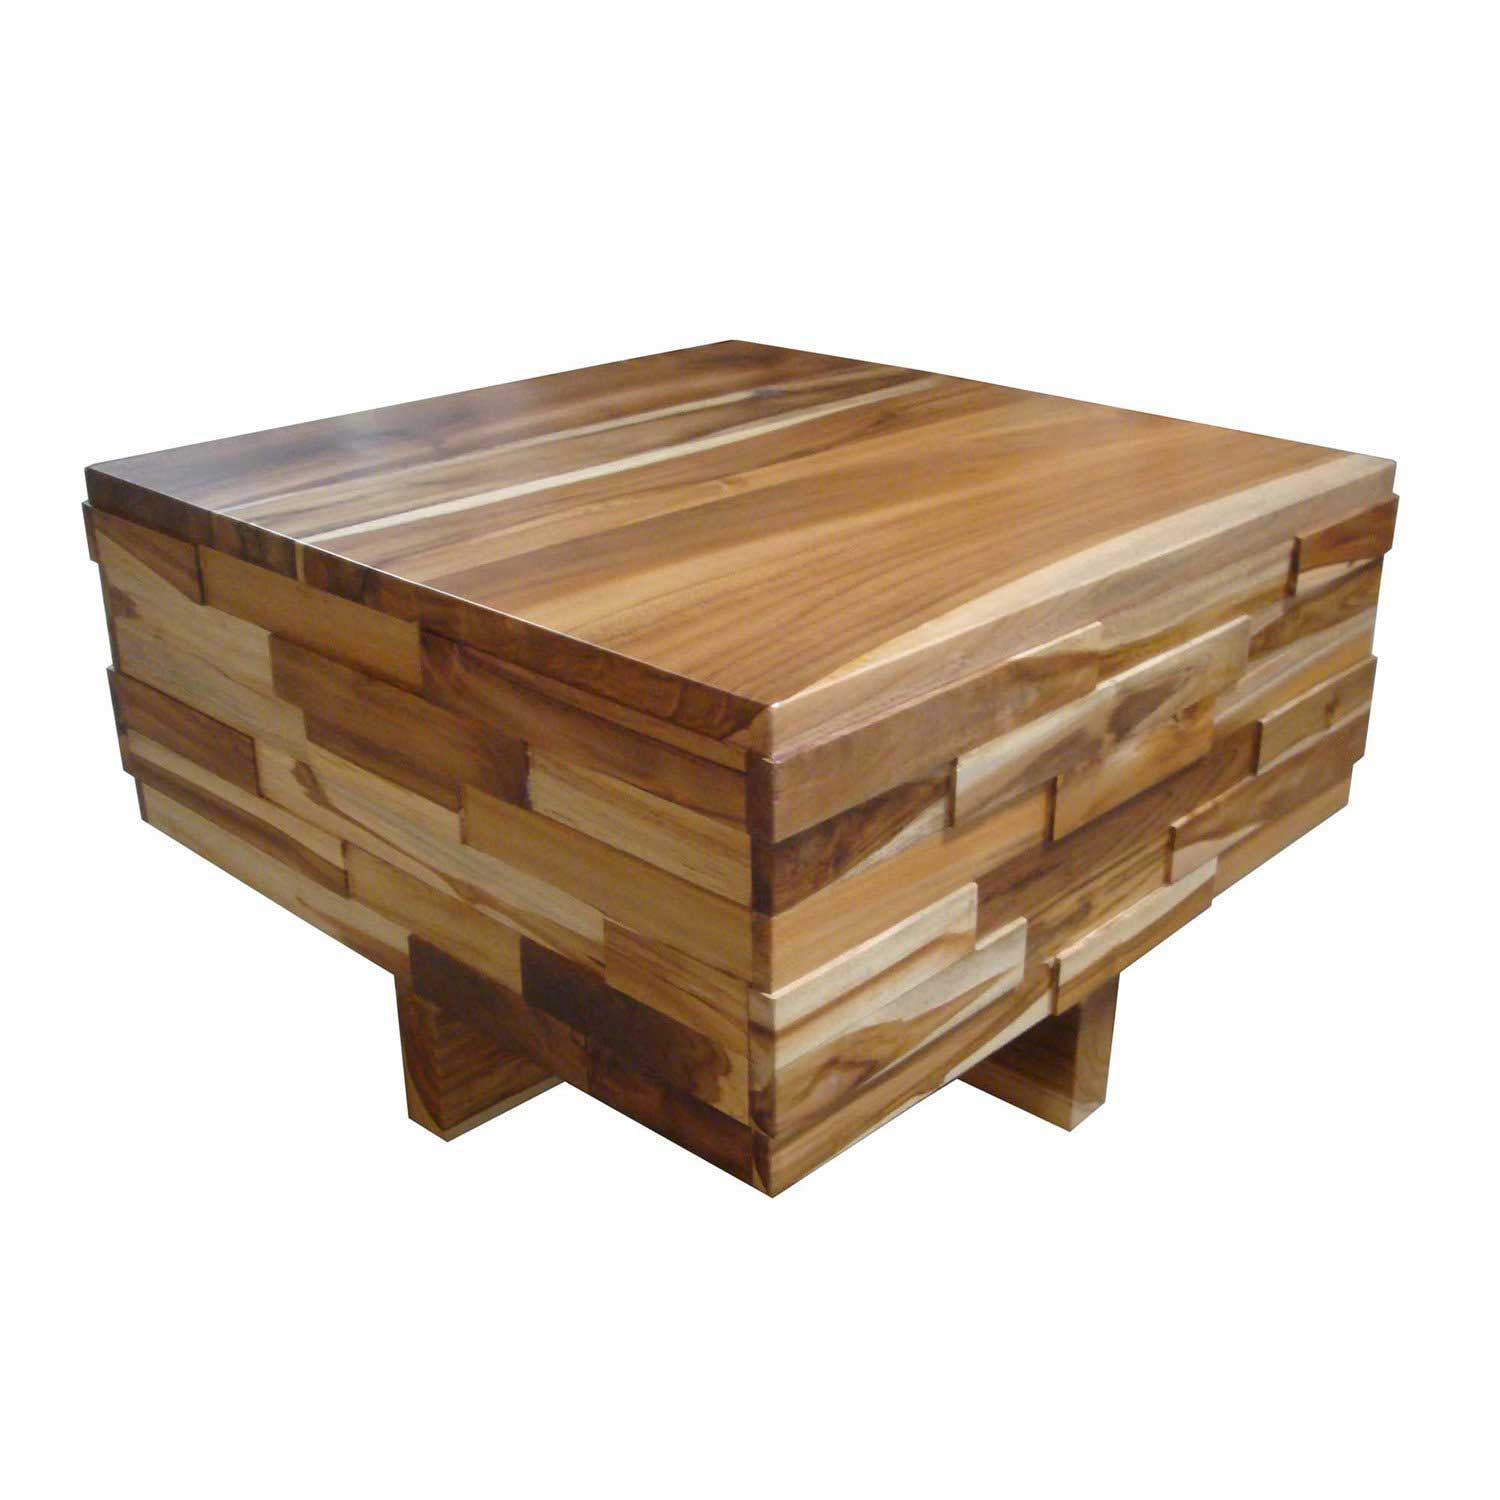 Teak Block Wood Coffee Table Padma's Plantation